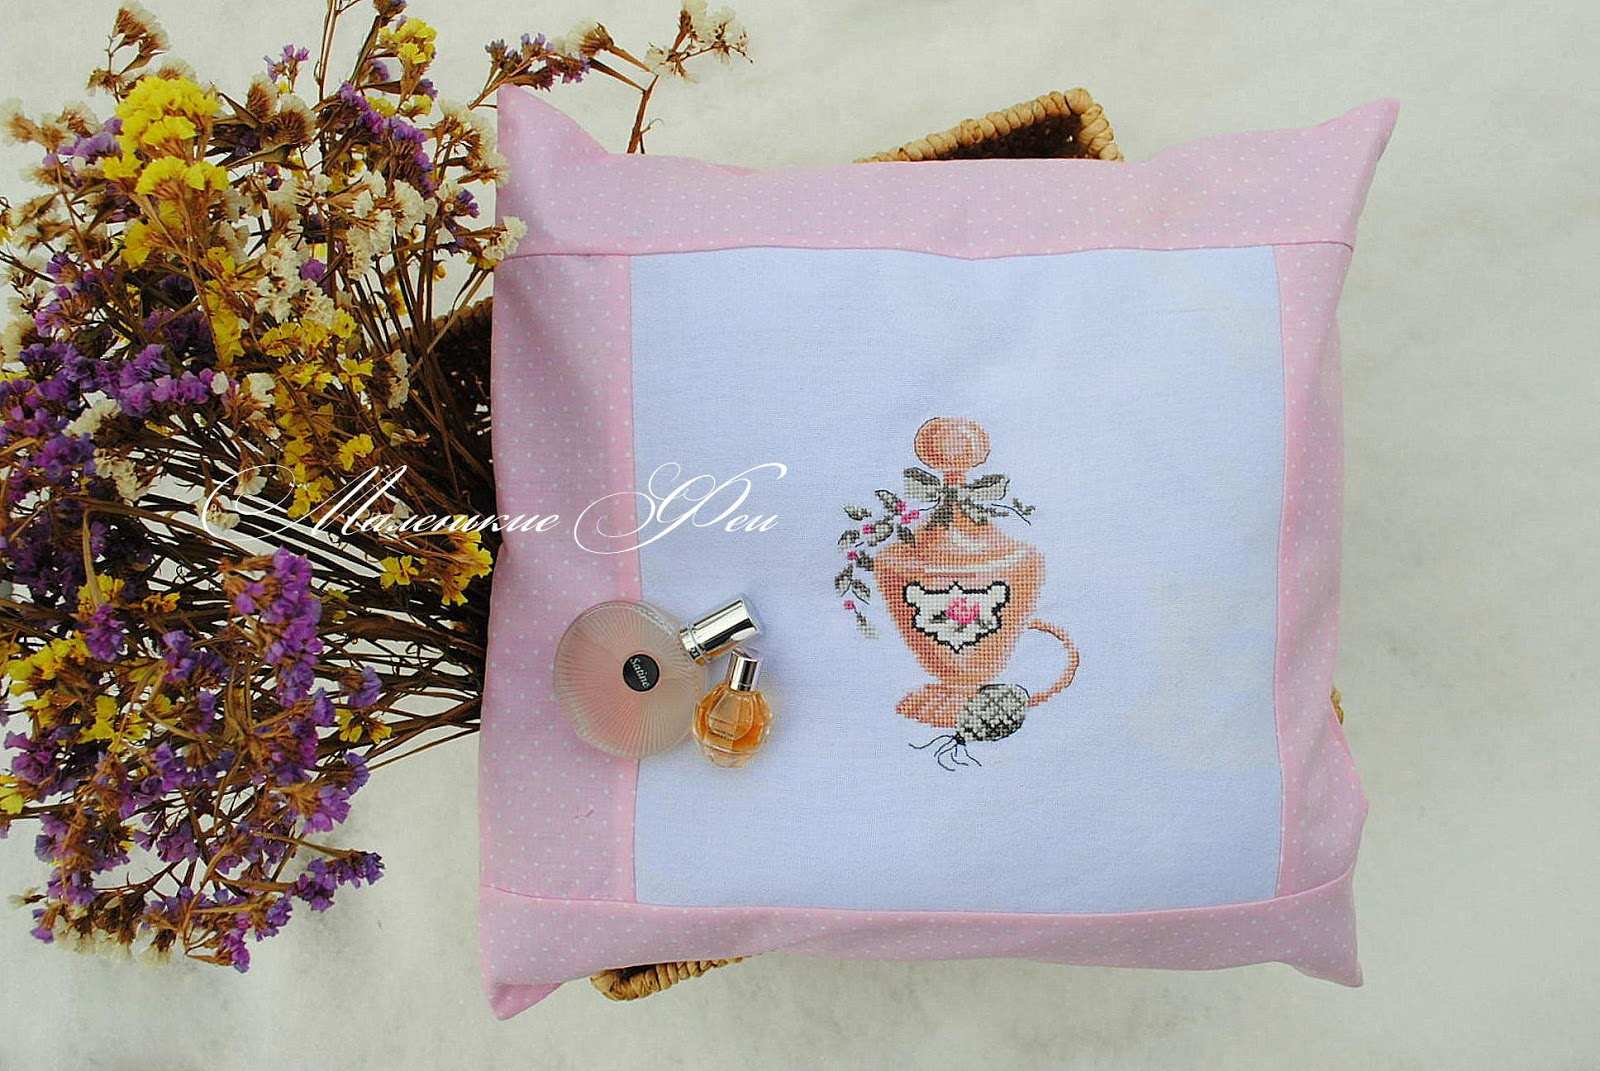 embroidery, cross-stitch, embroidery cross, log, embroidery, French stories, the French embroidery, Designed by the French, the French Designer Builder, perfume, bottle of perfume, pillow, handmade pillowcase, embroidered pillow, embroidered pillow case, pillow handmade, rose, roses, pink